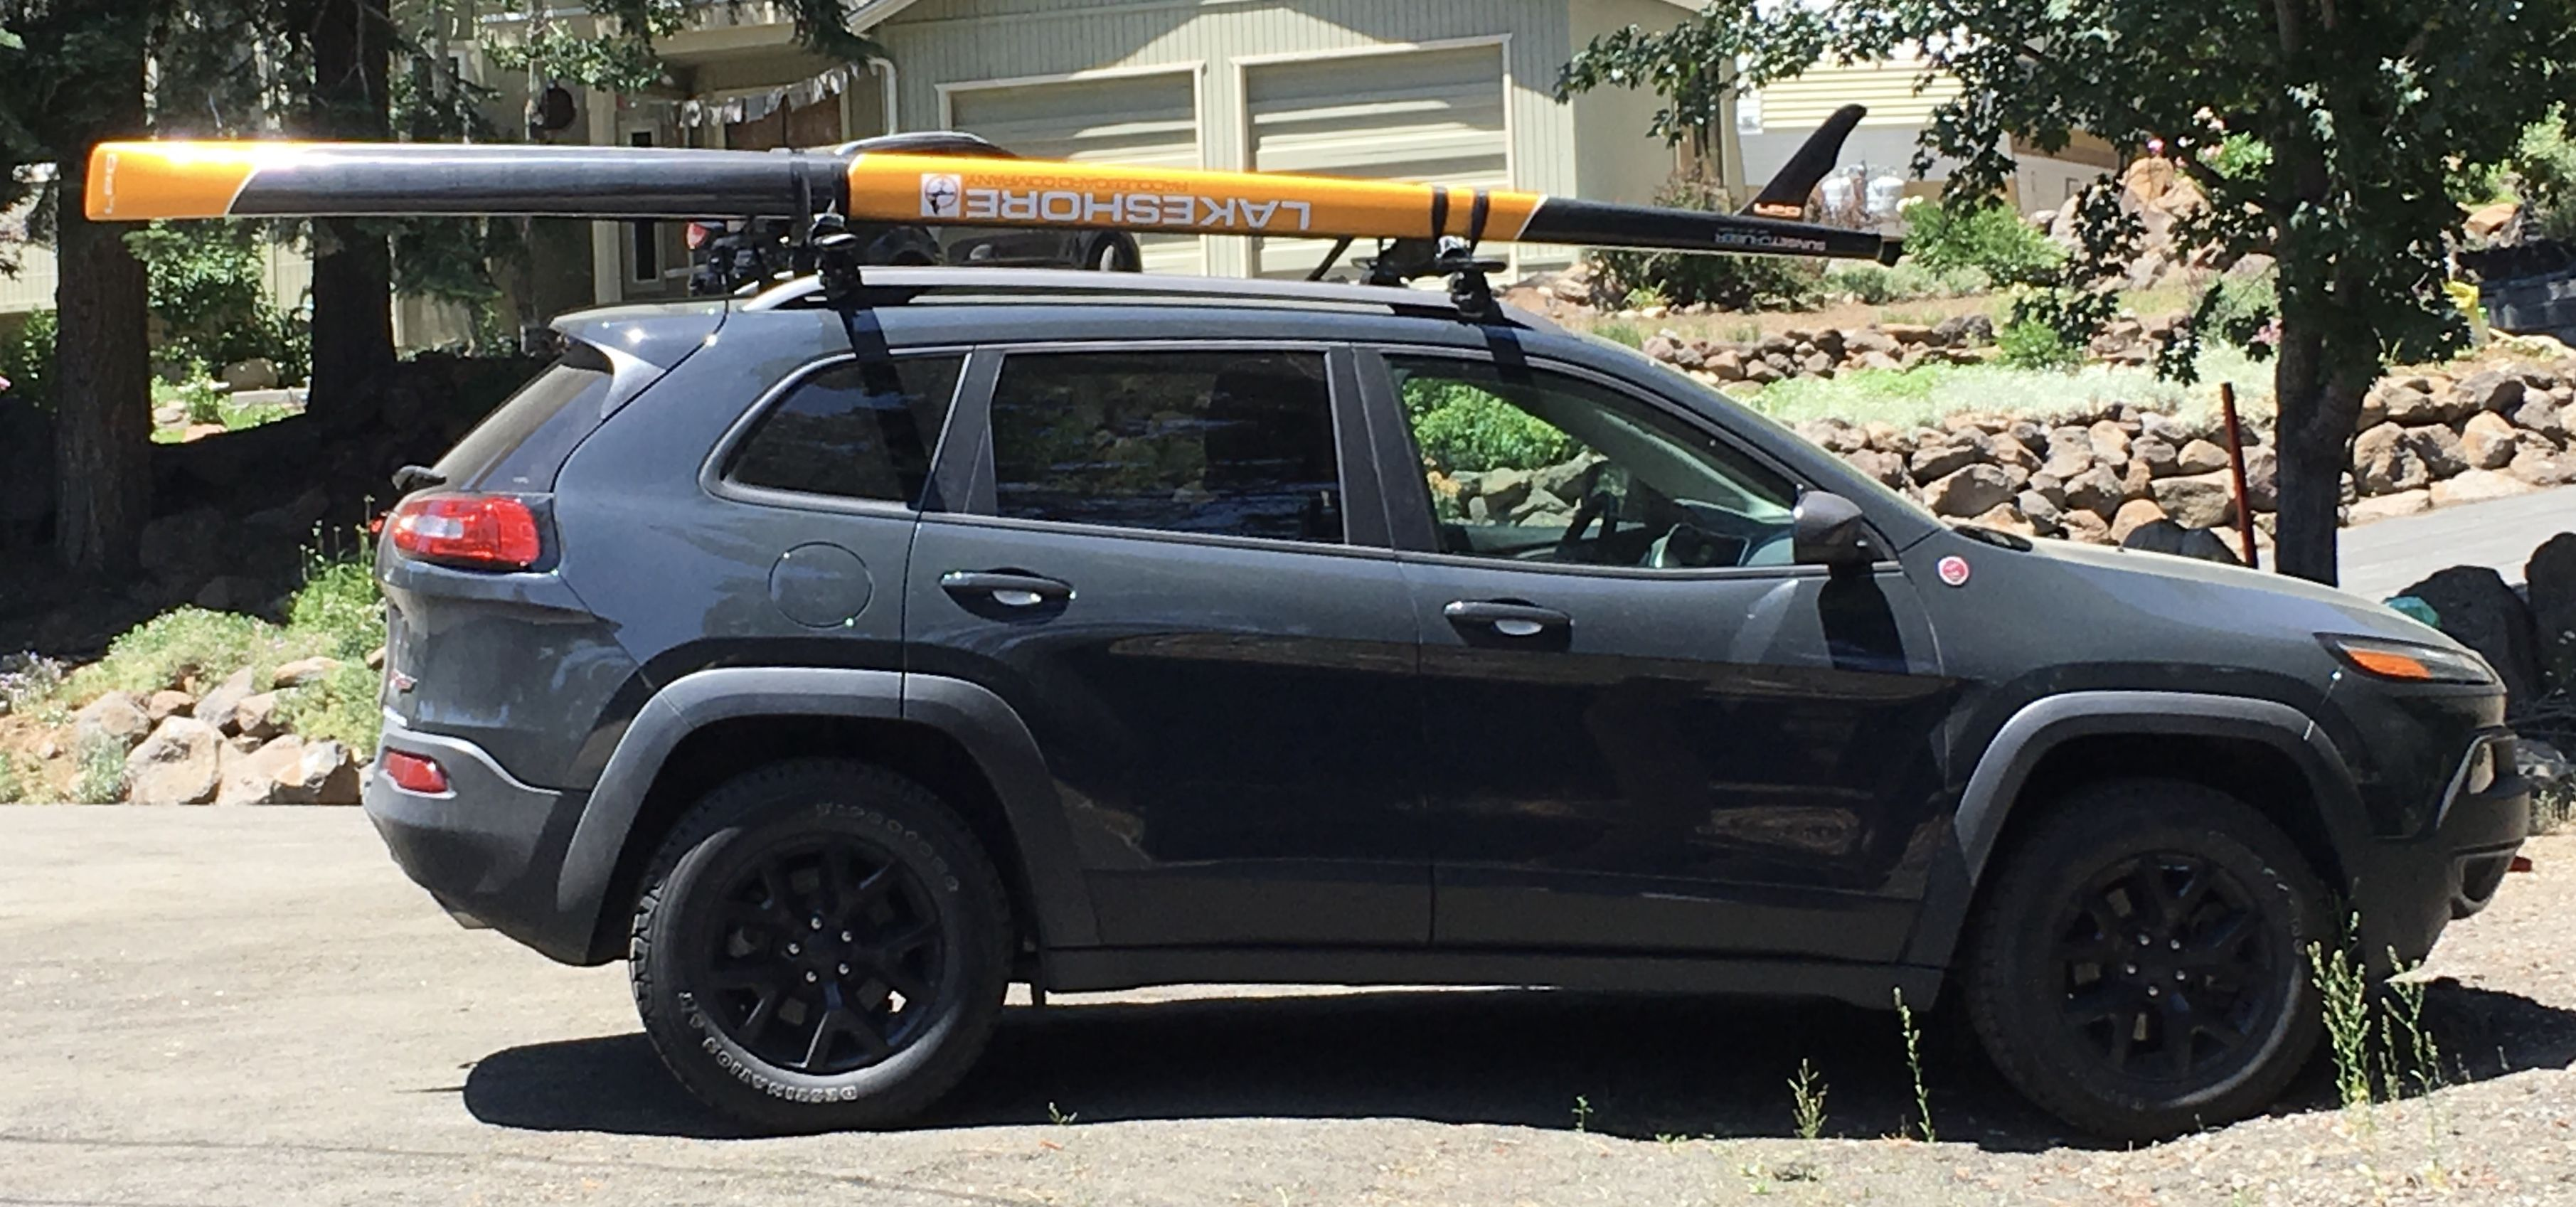 2017 Jeep Cherokee Trailhawk With Paddle Board Roof Rack Jeep